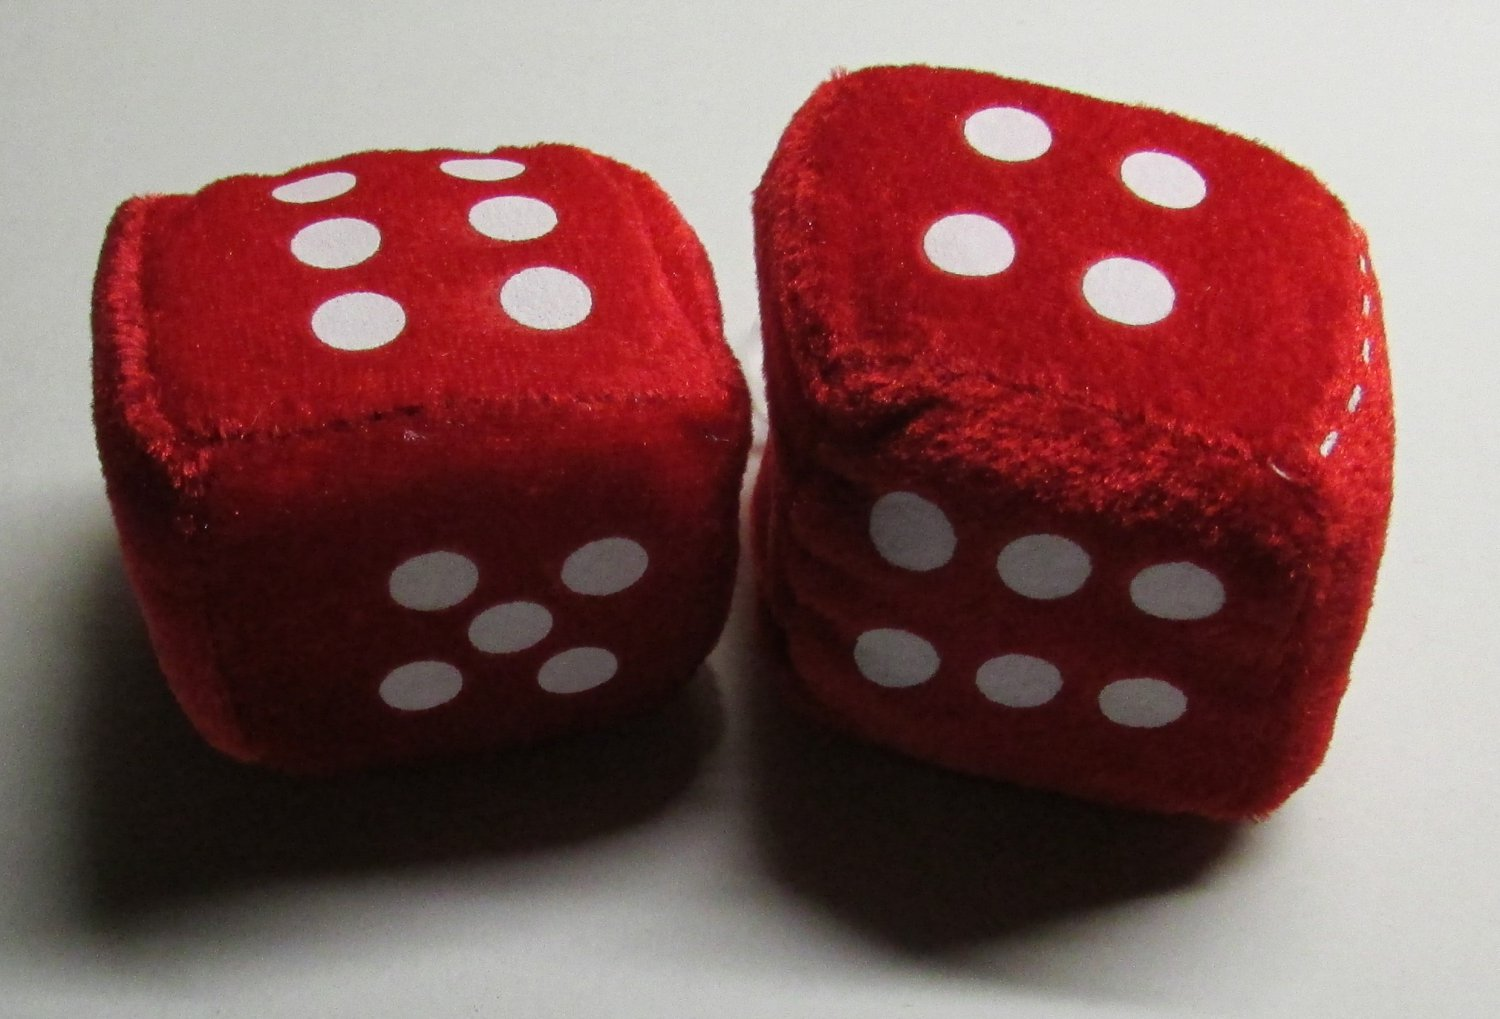 Fuzzy Red DICE w White Dots 2 1/2 inch Hanging DICE Auto Rearview Car Mirror NEW